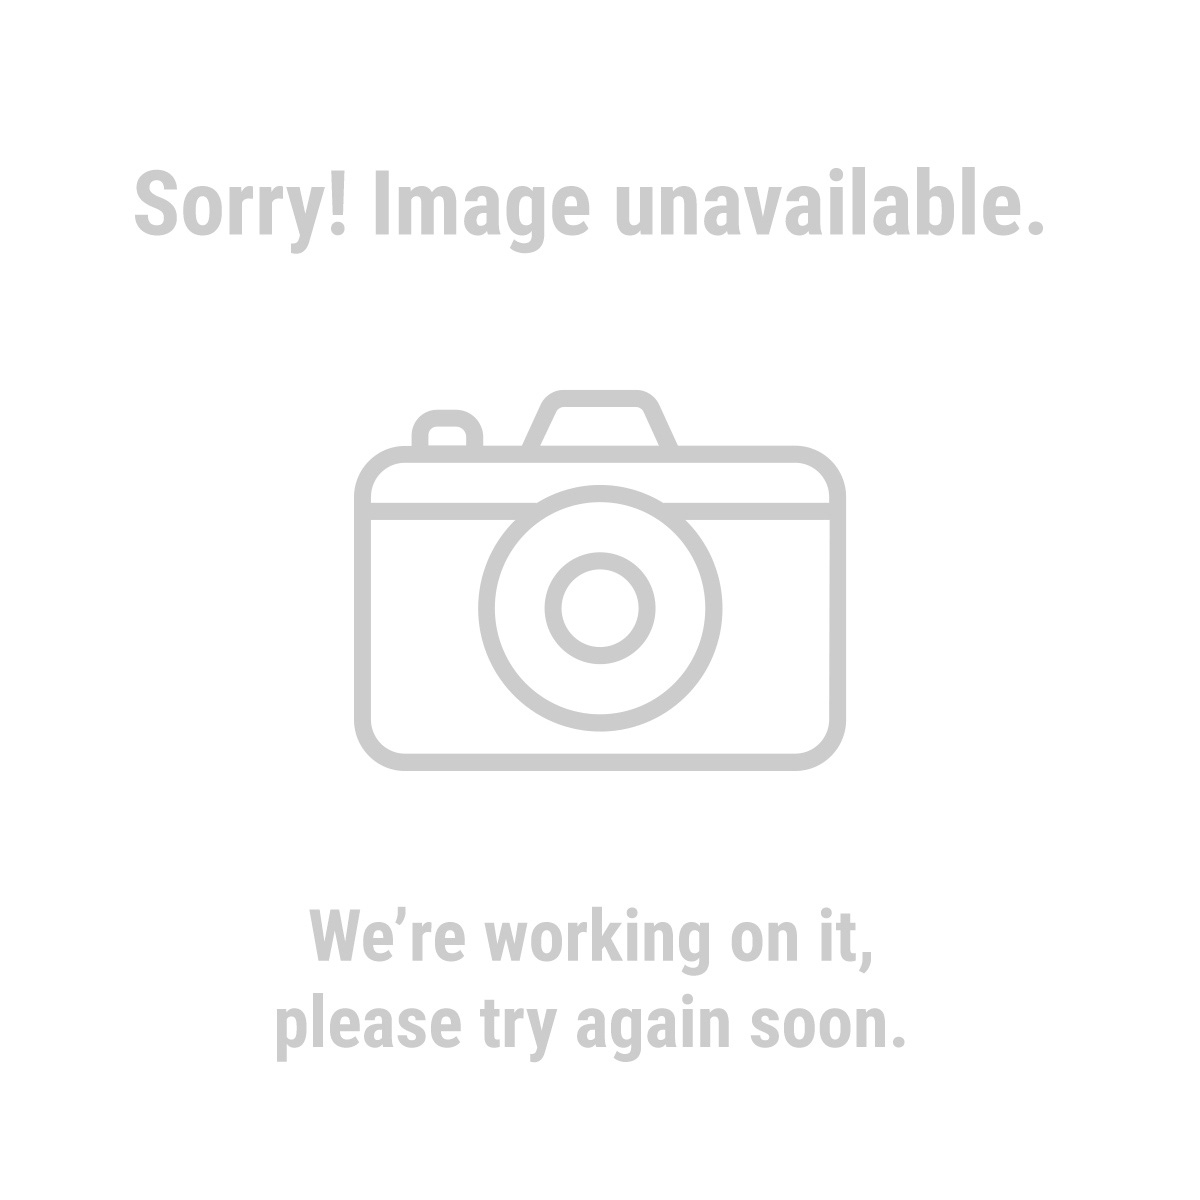 HFT 60442 49 ft. x 29 ft. 4 in. Reflective Heavy Duty Silver Tarp